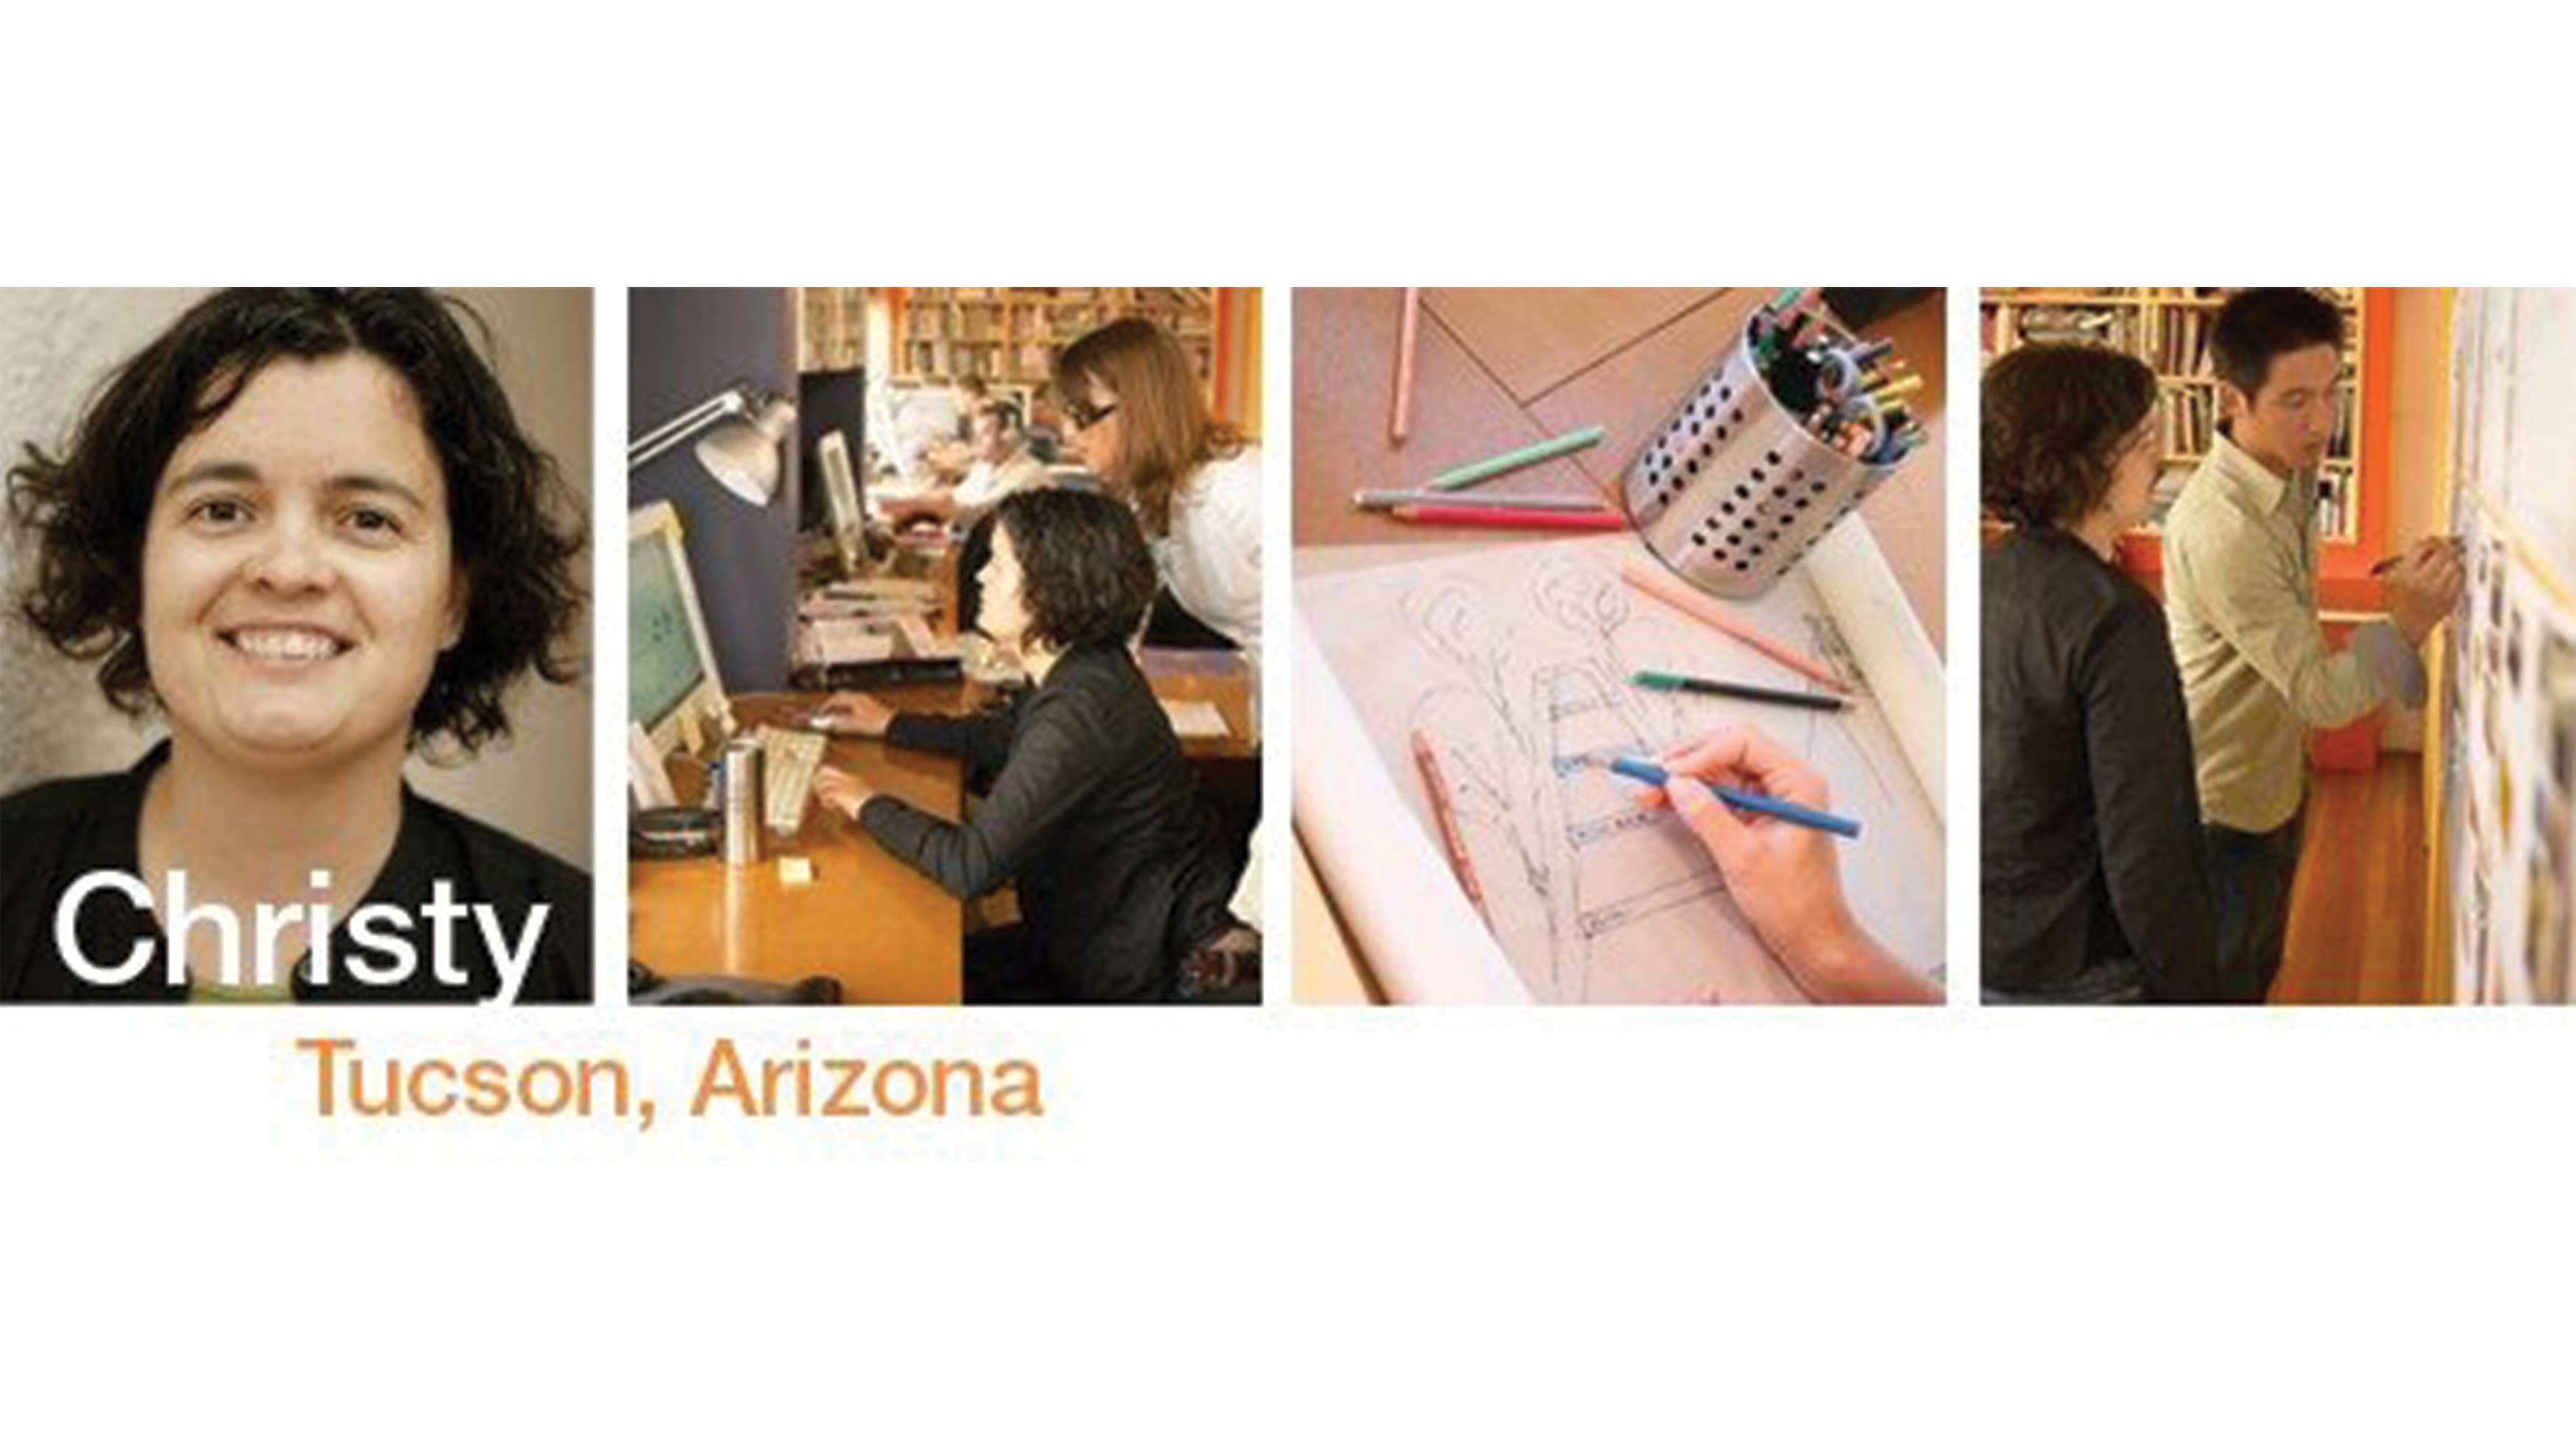 Portrait of Christy Montgomery, who heads the RSM Design office in Tuscon